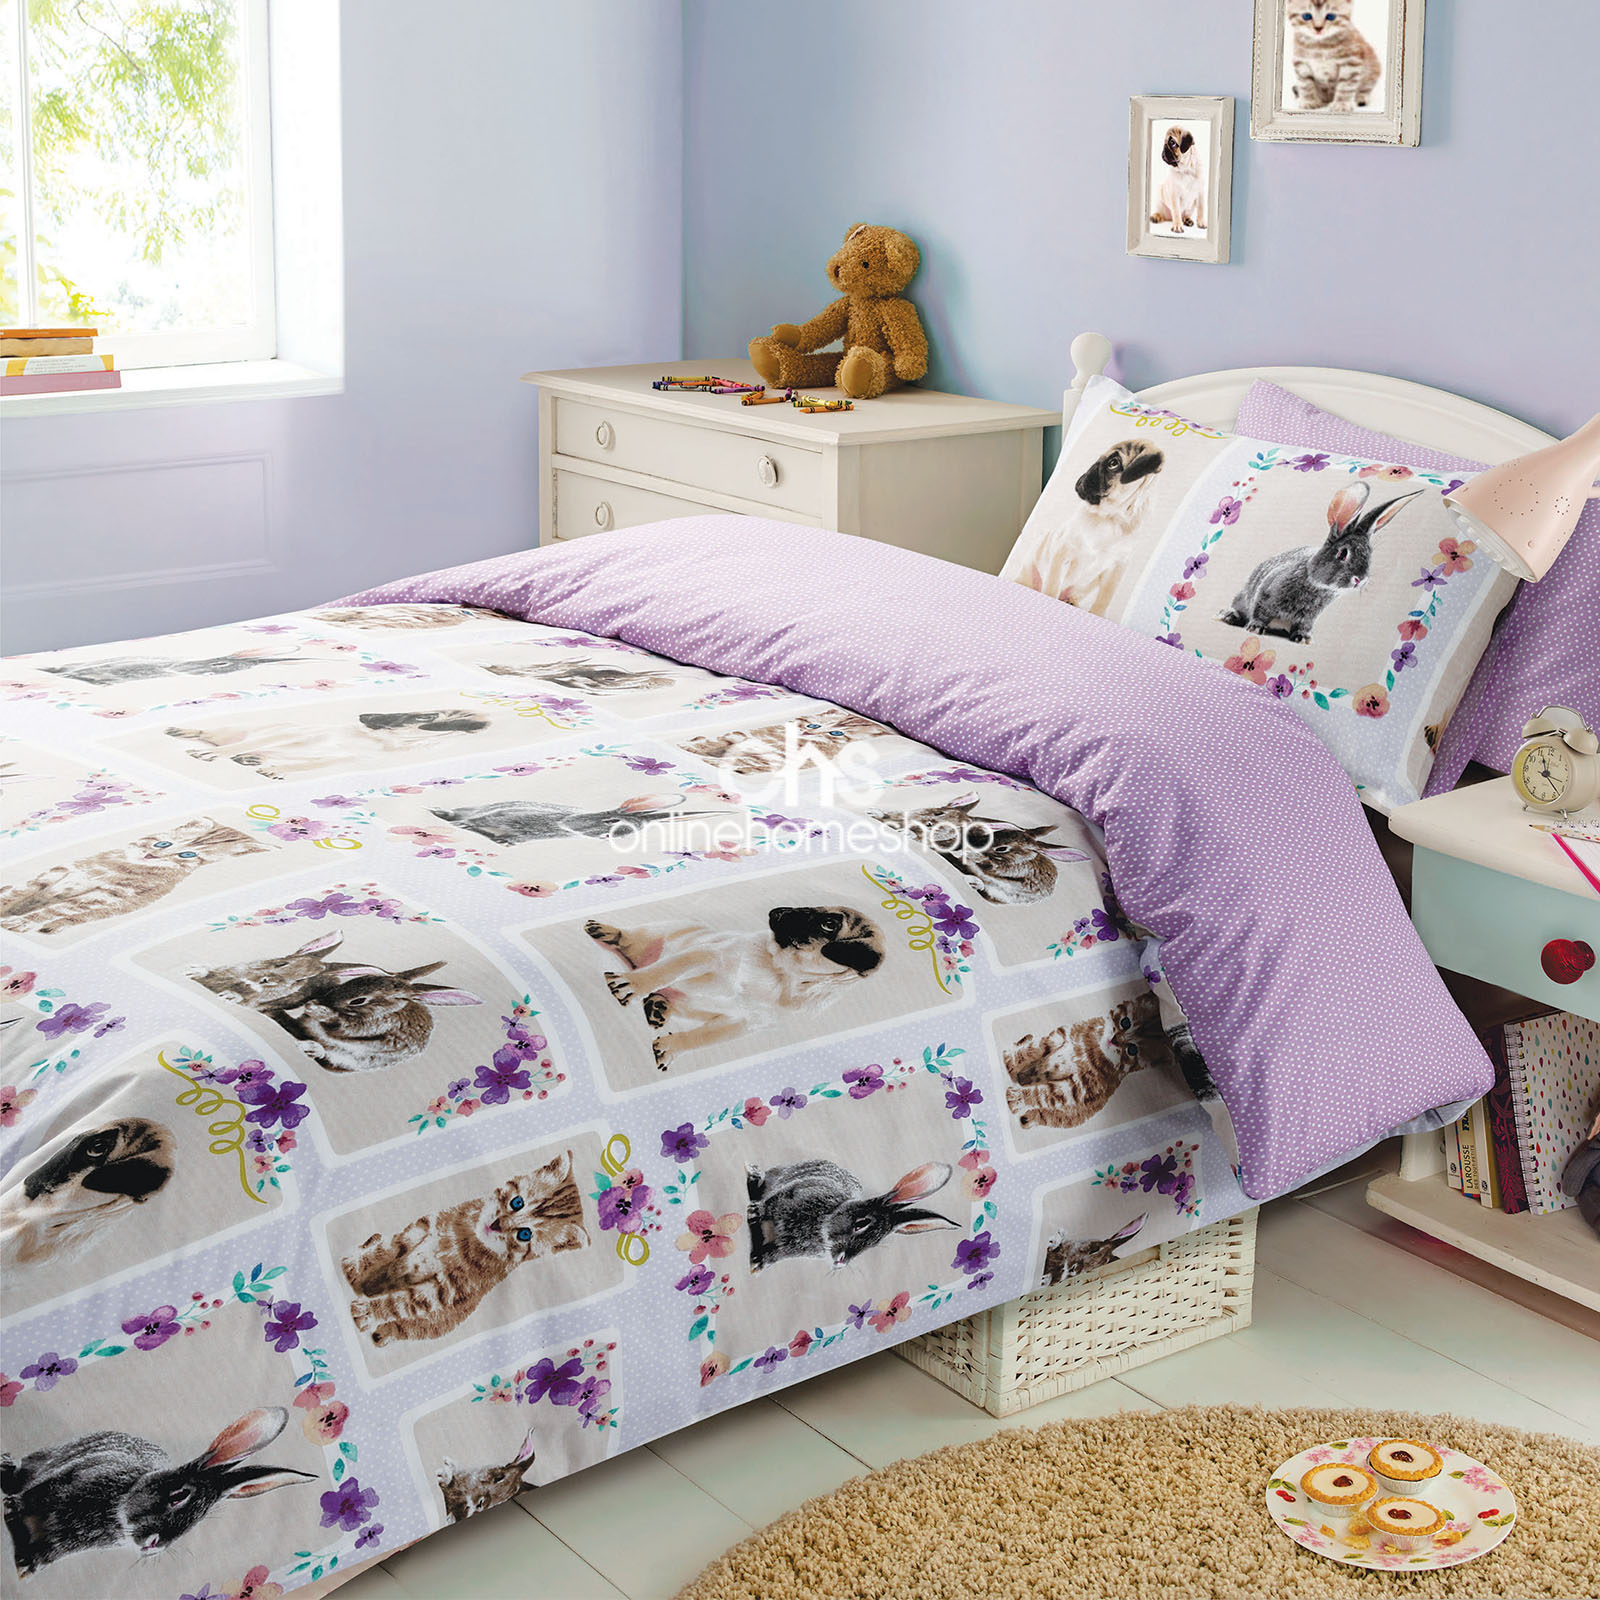 duvet cover with pillowcase bedding set pet love kitten bunny rabbit pug lilac - Liliac Bedding